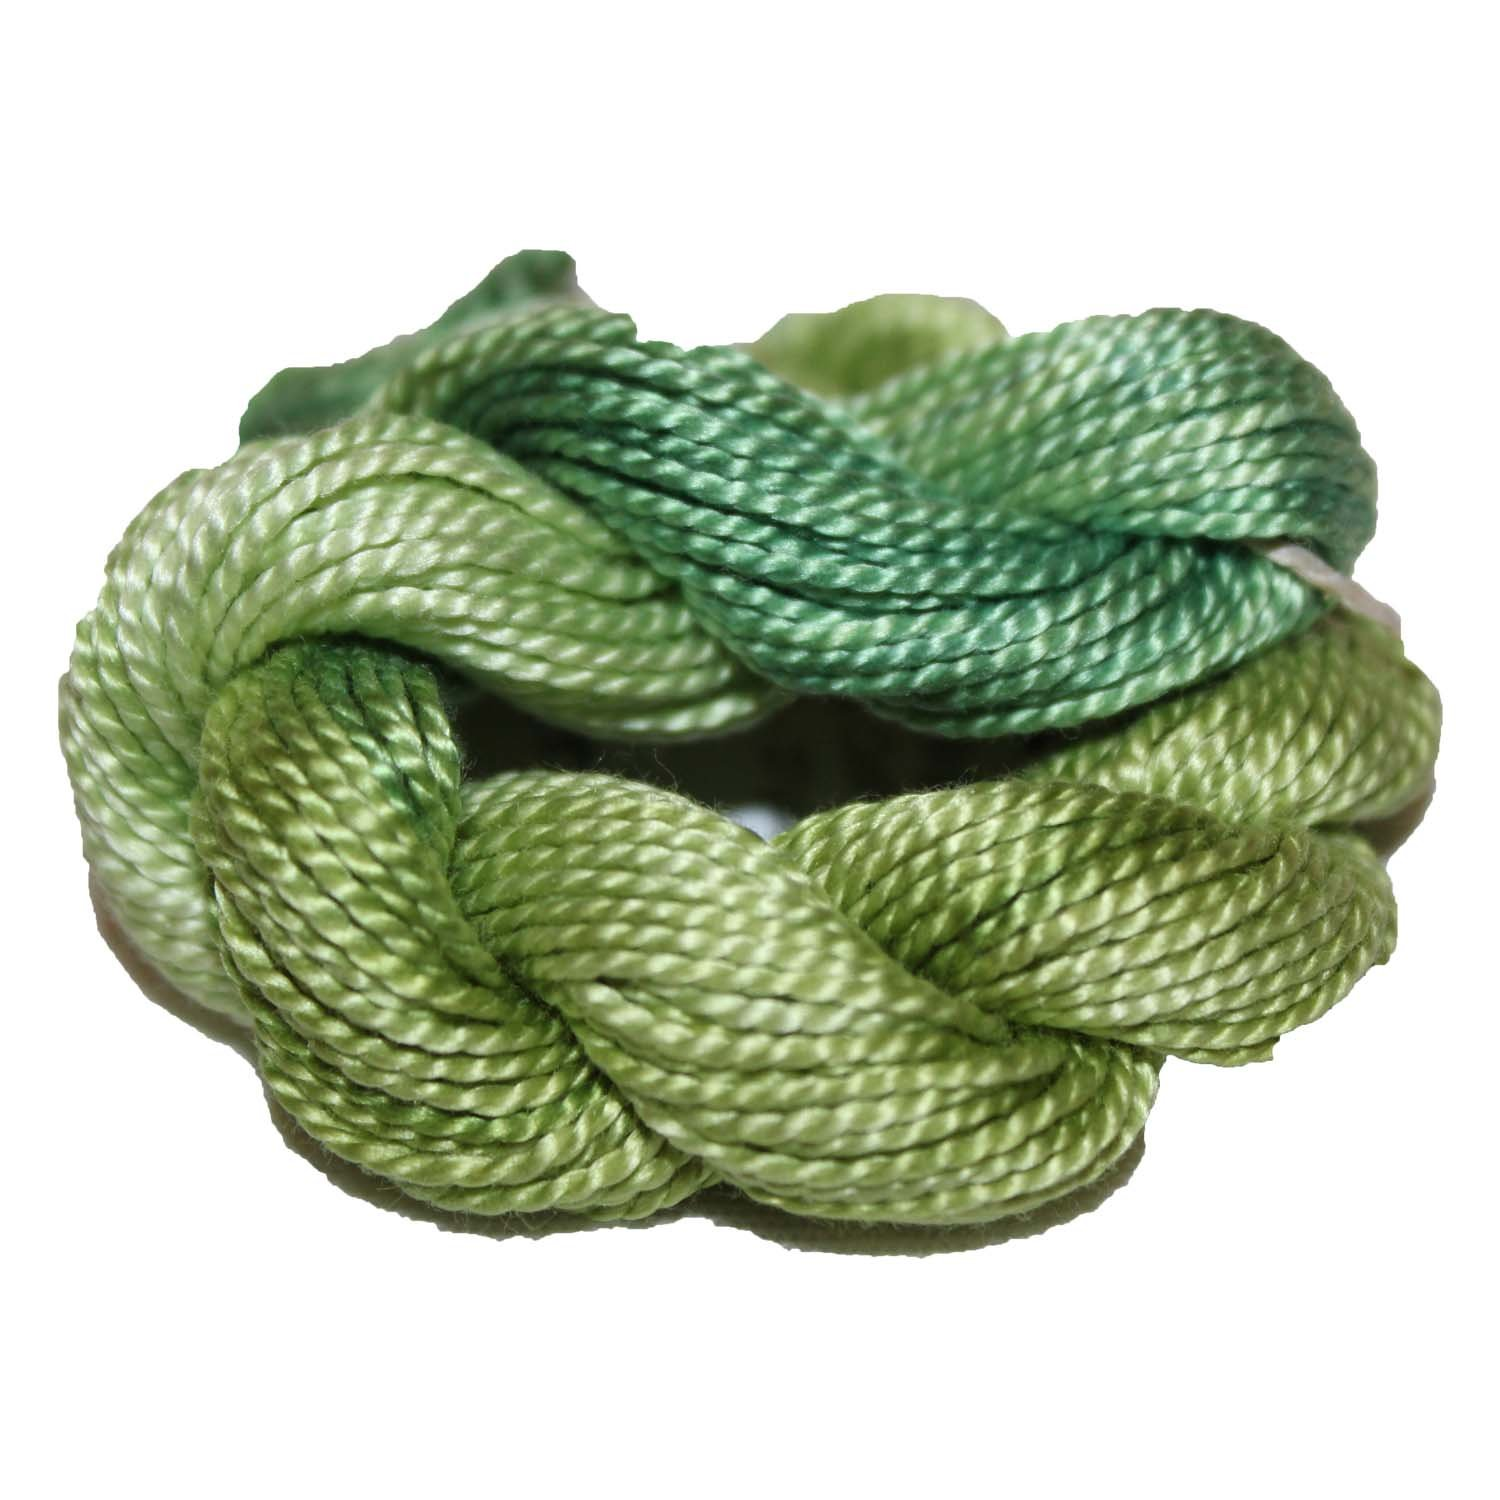 Fern- Hand-Dyed Perle Cotton